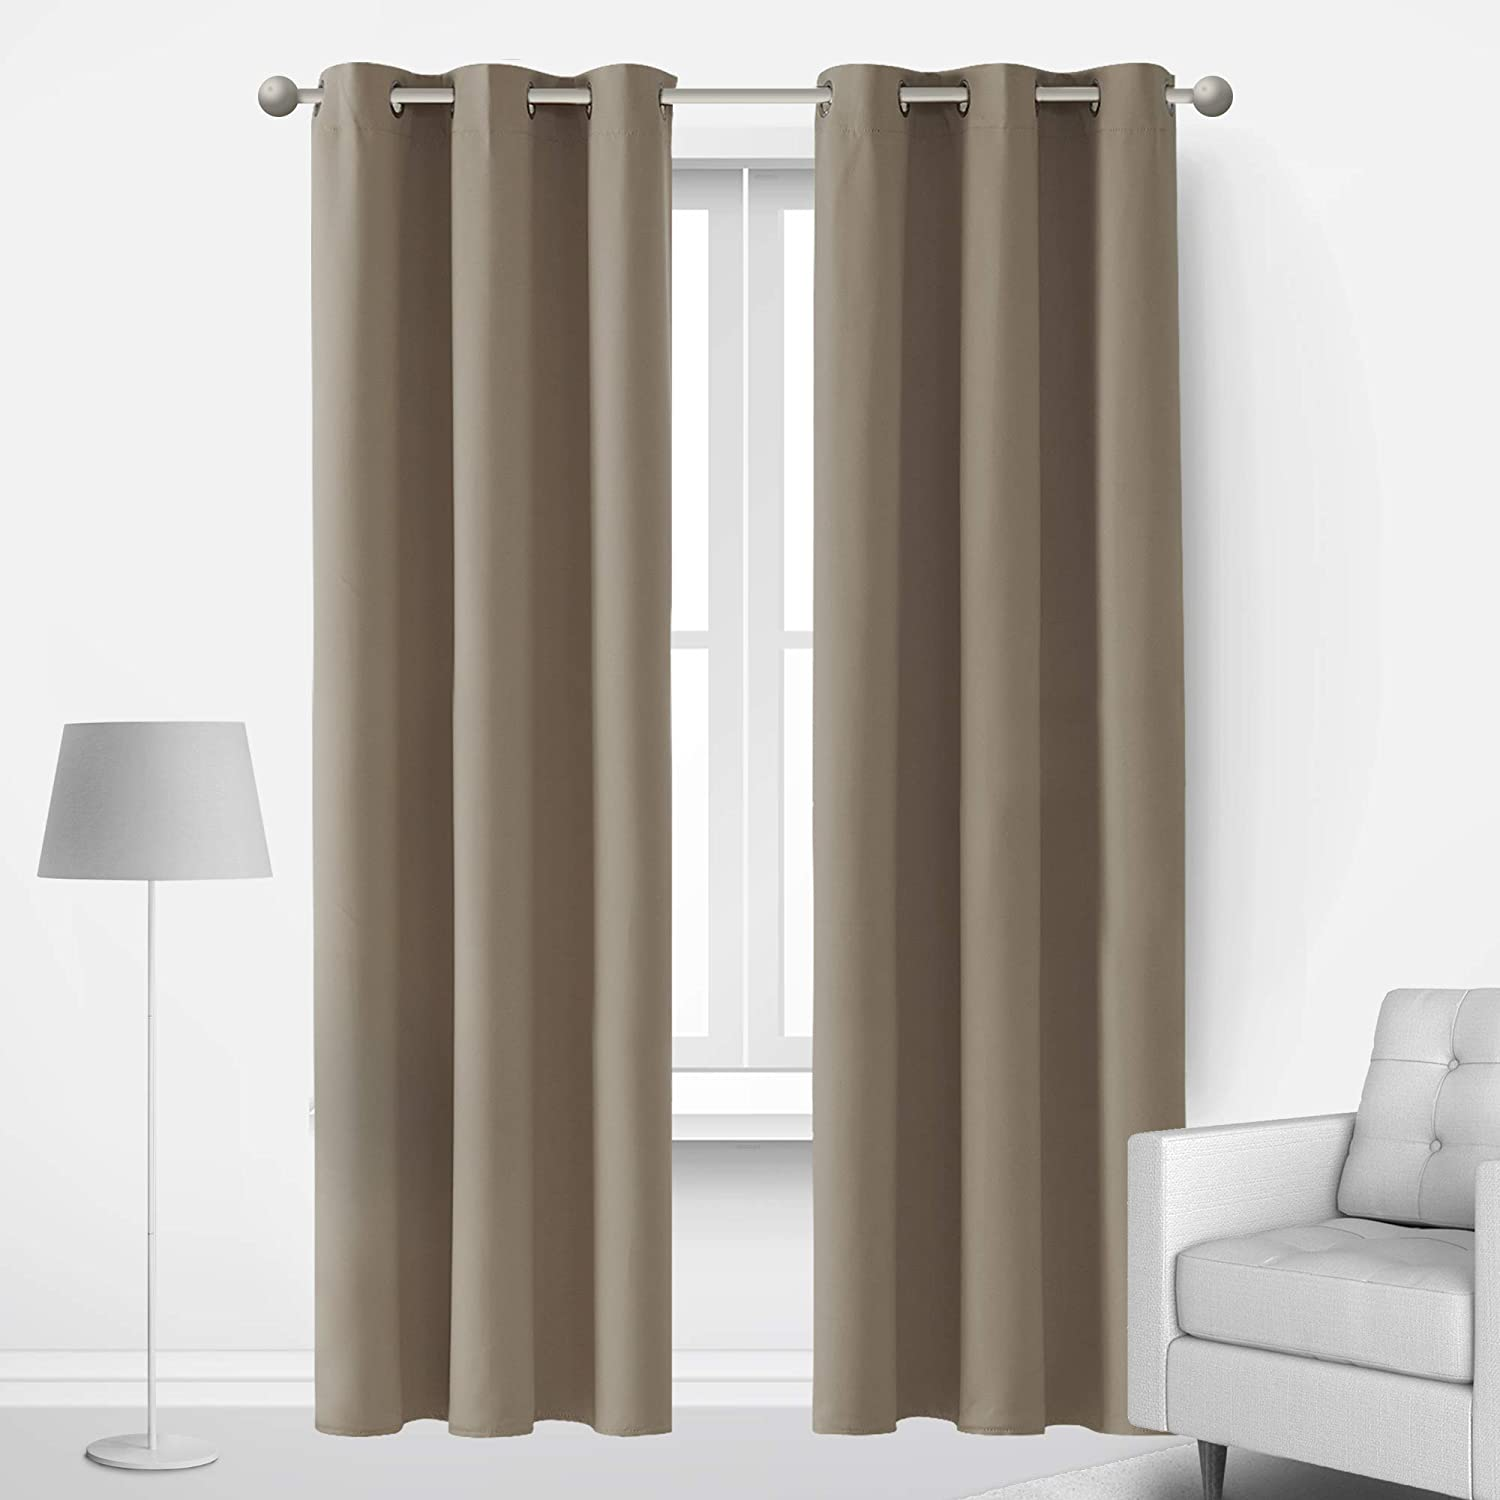 Deconovo Taupe Blackout Curtains for Bedroom Living Room Kitchen and Office Set of 2 Thermal Insulated Room Darkening Window Drape Sound Proof 84 Inches Length Curtains, 2 Panels, 42x84 in, Taupe